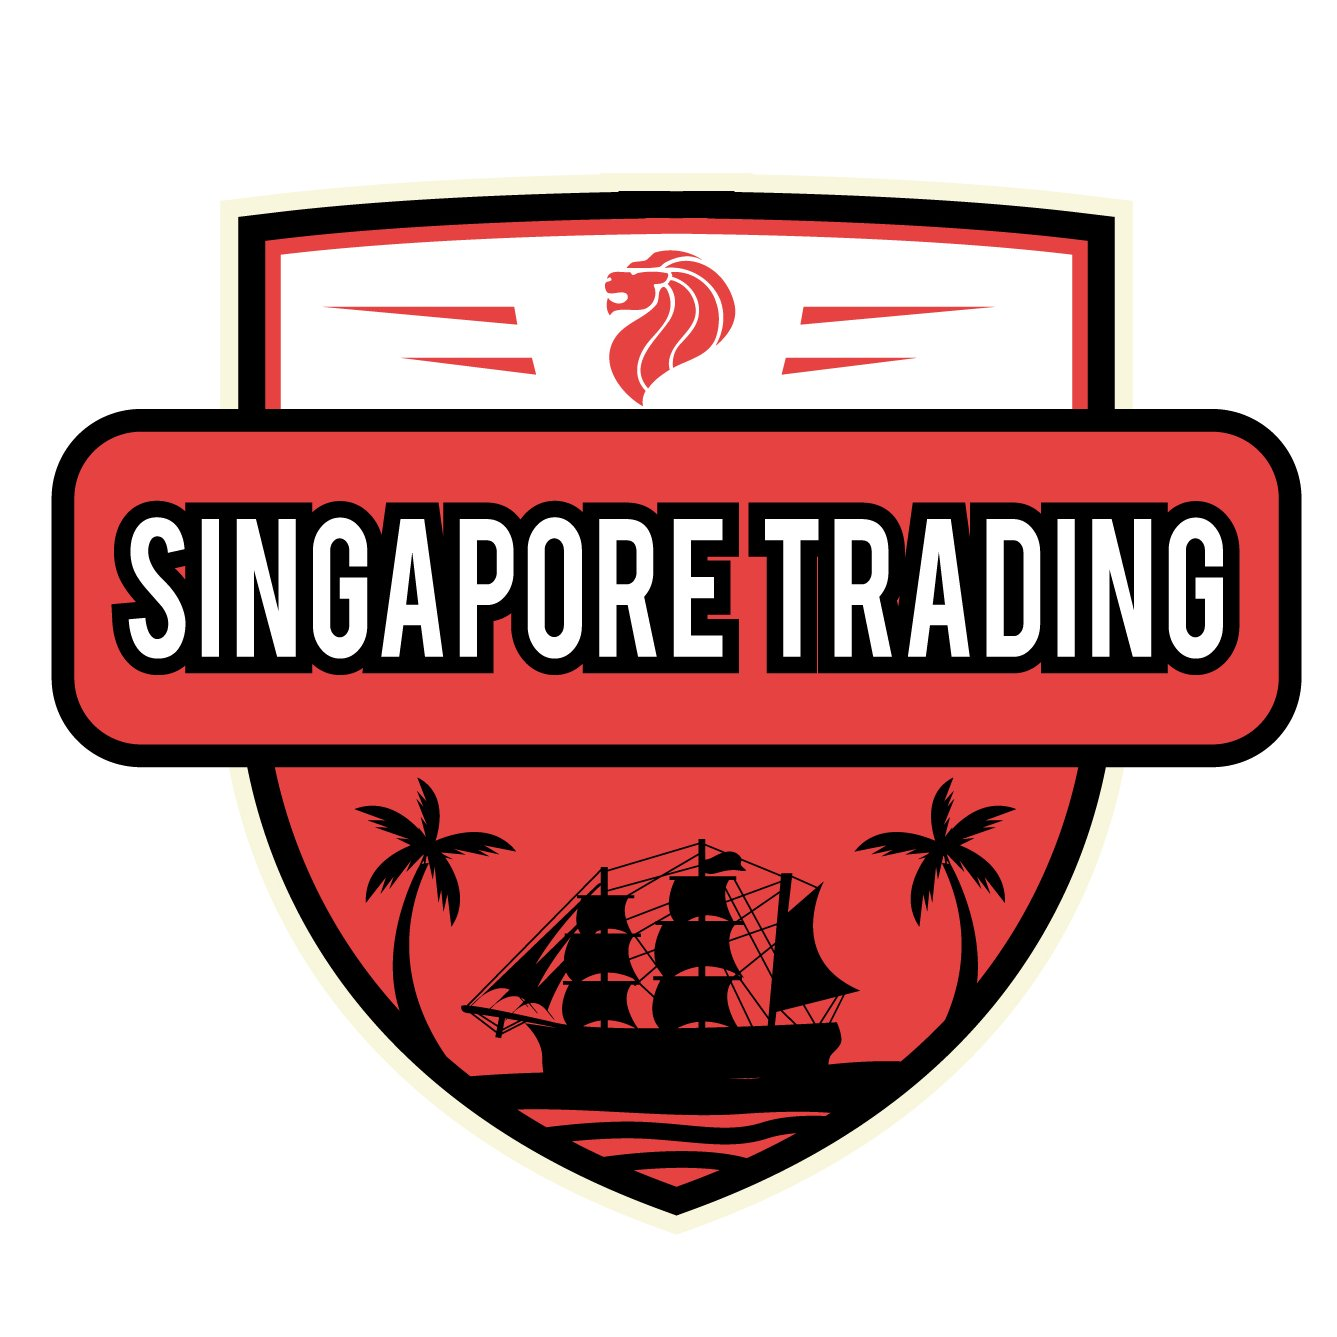 Junior Trader with a passion for trading will price and trade financial products, build and maintain positions in derivatives and equities, improve models, and 20 days ago - save job - more View all Ingensoma jobs - Singapore jobs.